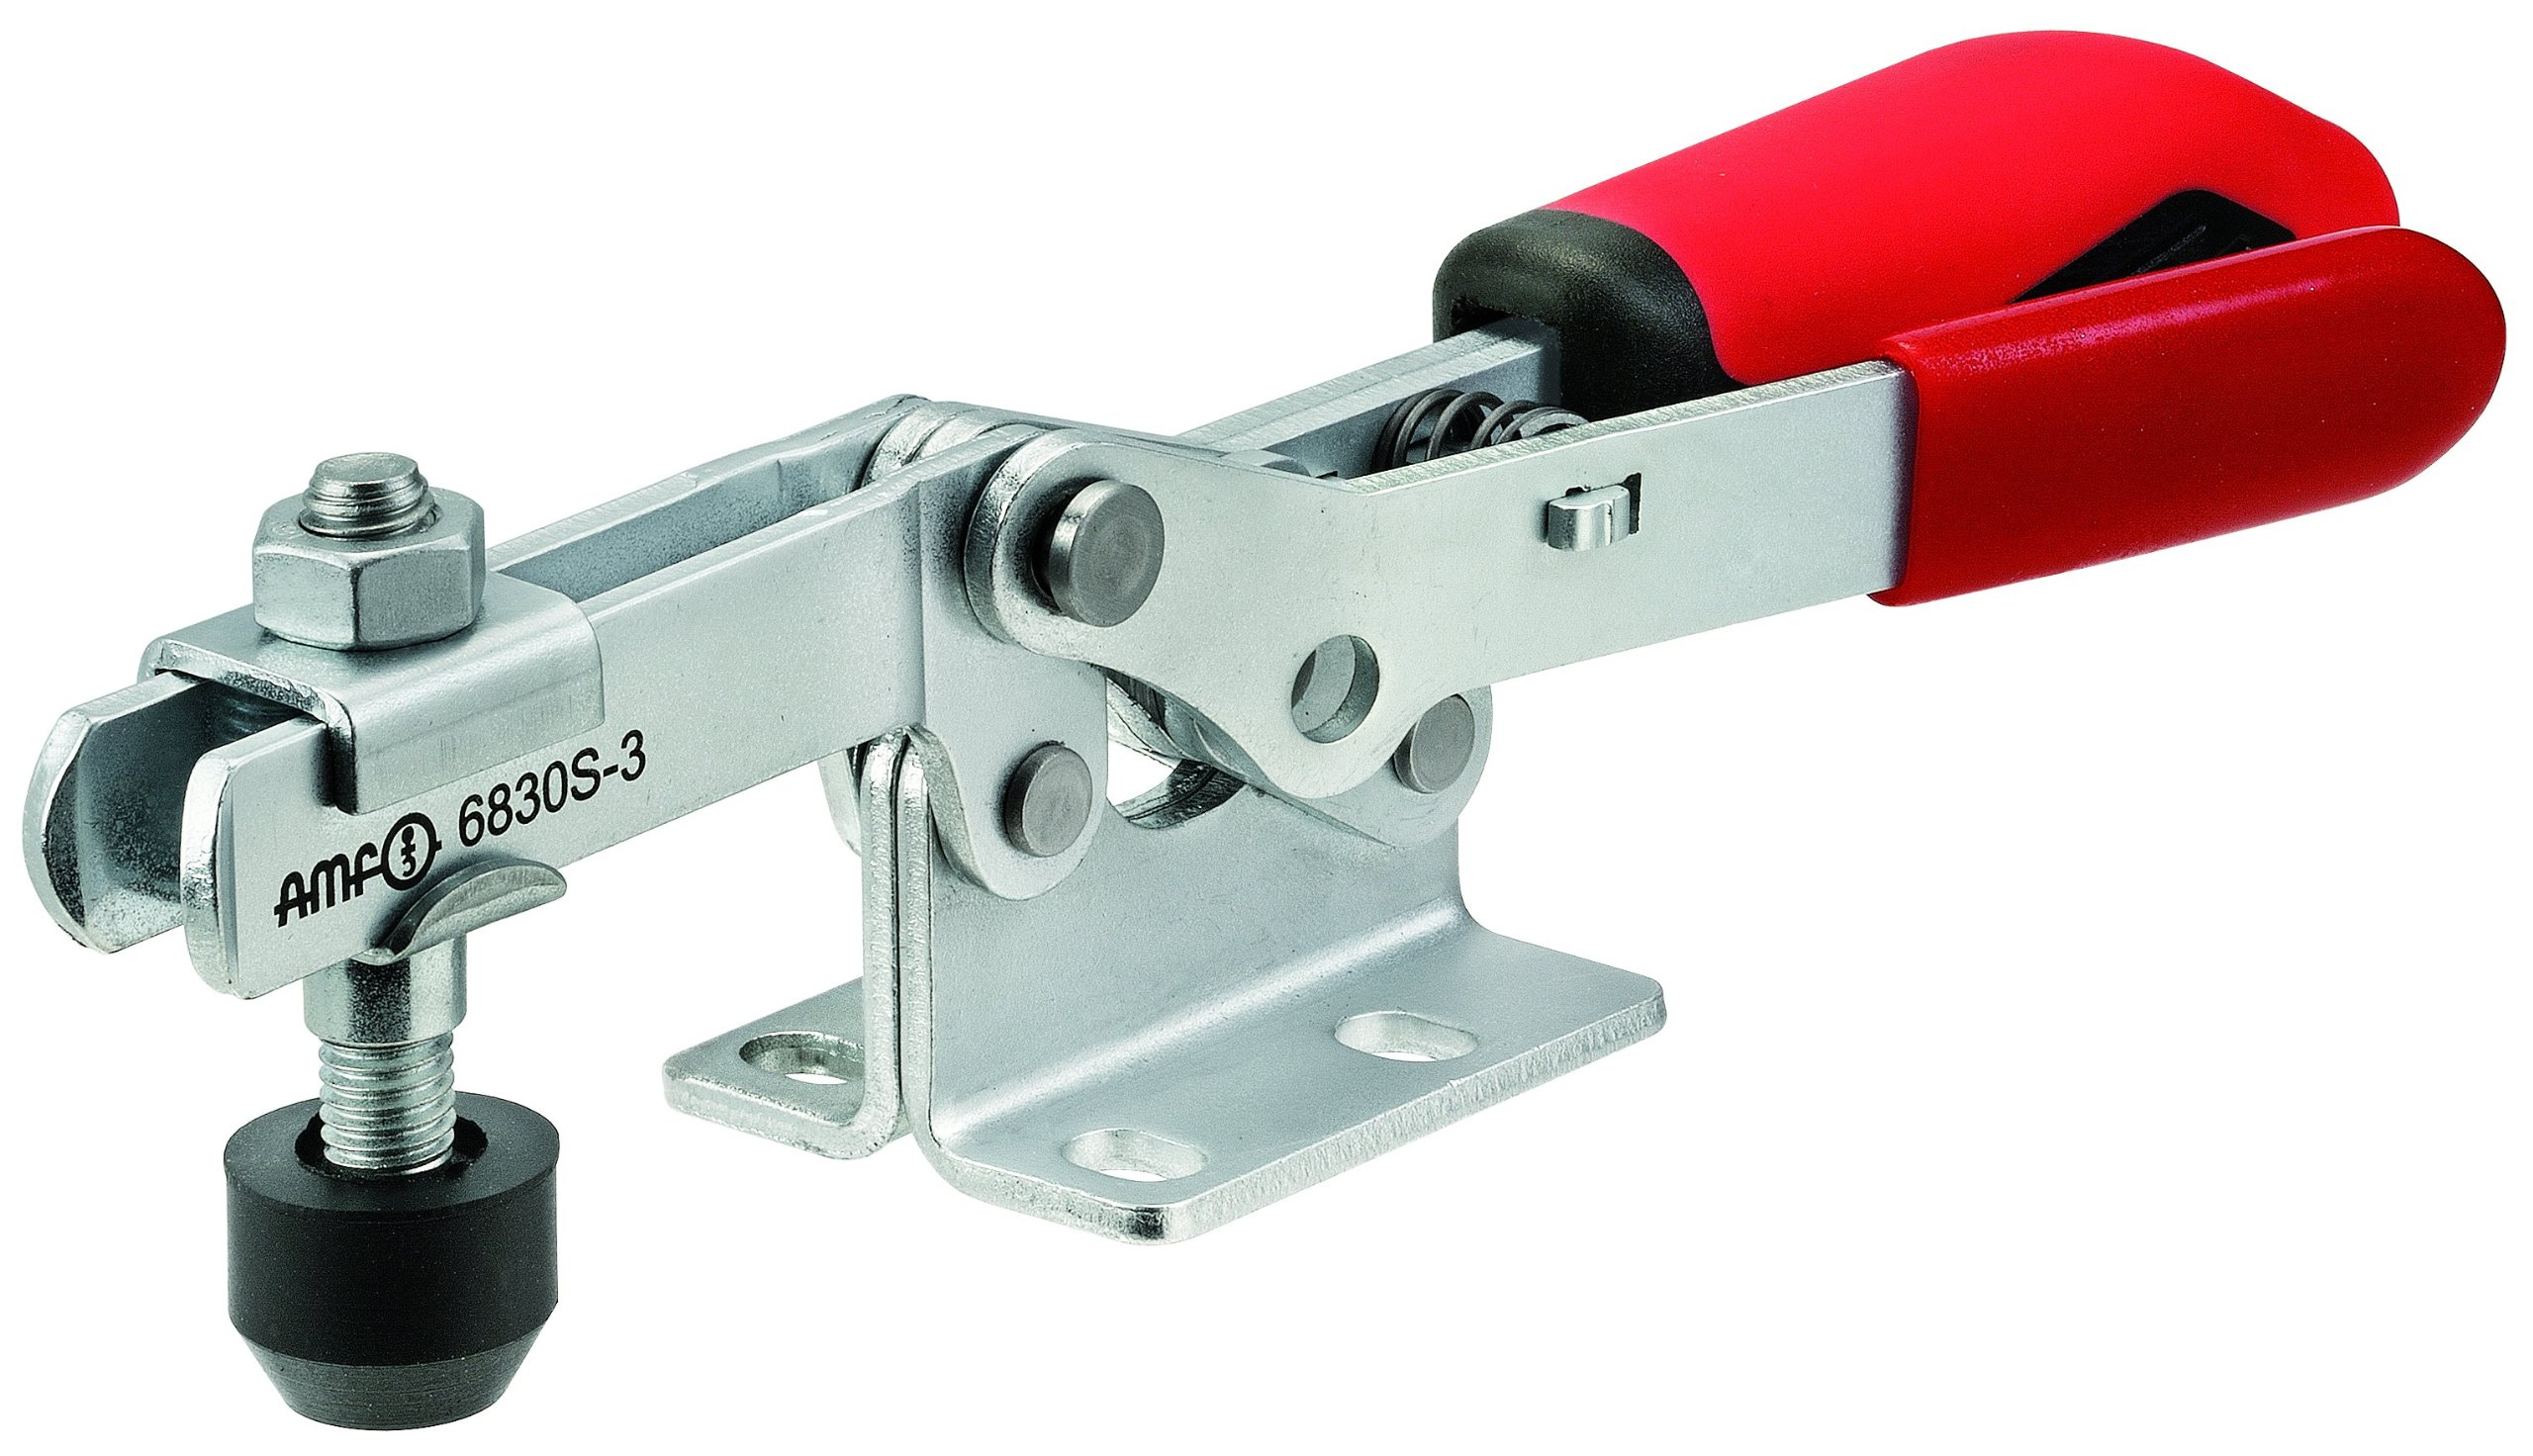 JW Winco Series 6830-S Steel Horizontal Acting Toggle Clamp with Safety Interlock and Horizontal Mounting Base, Metric Size, Clamp Size 3, 1800/2500 Newton Holding Capacity